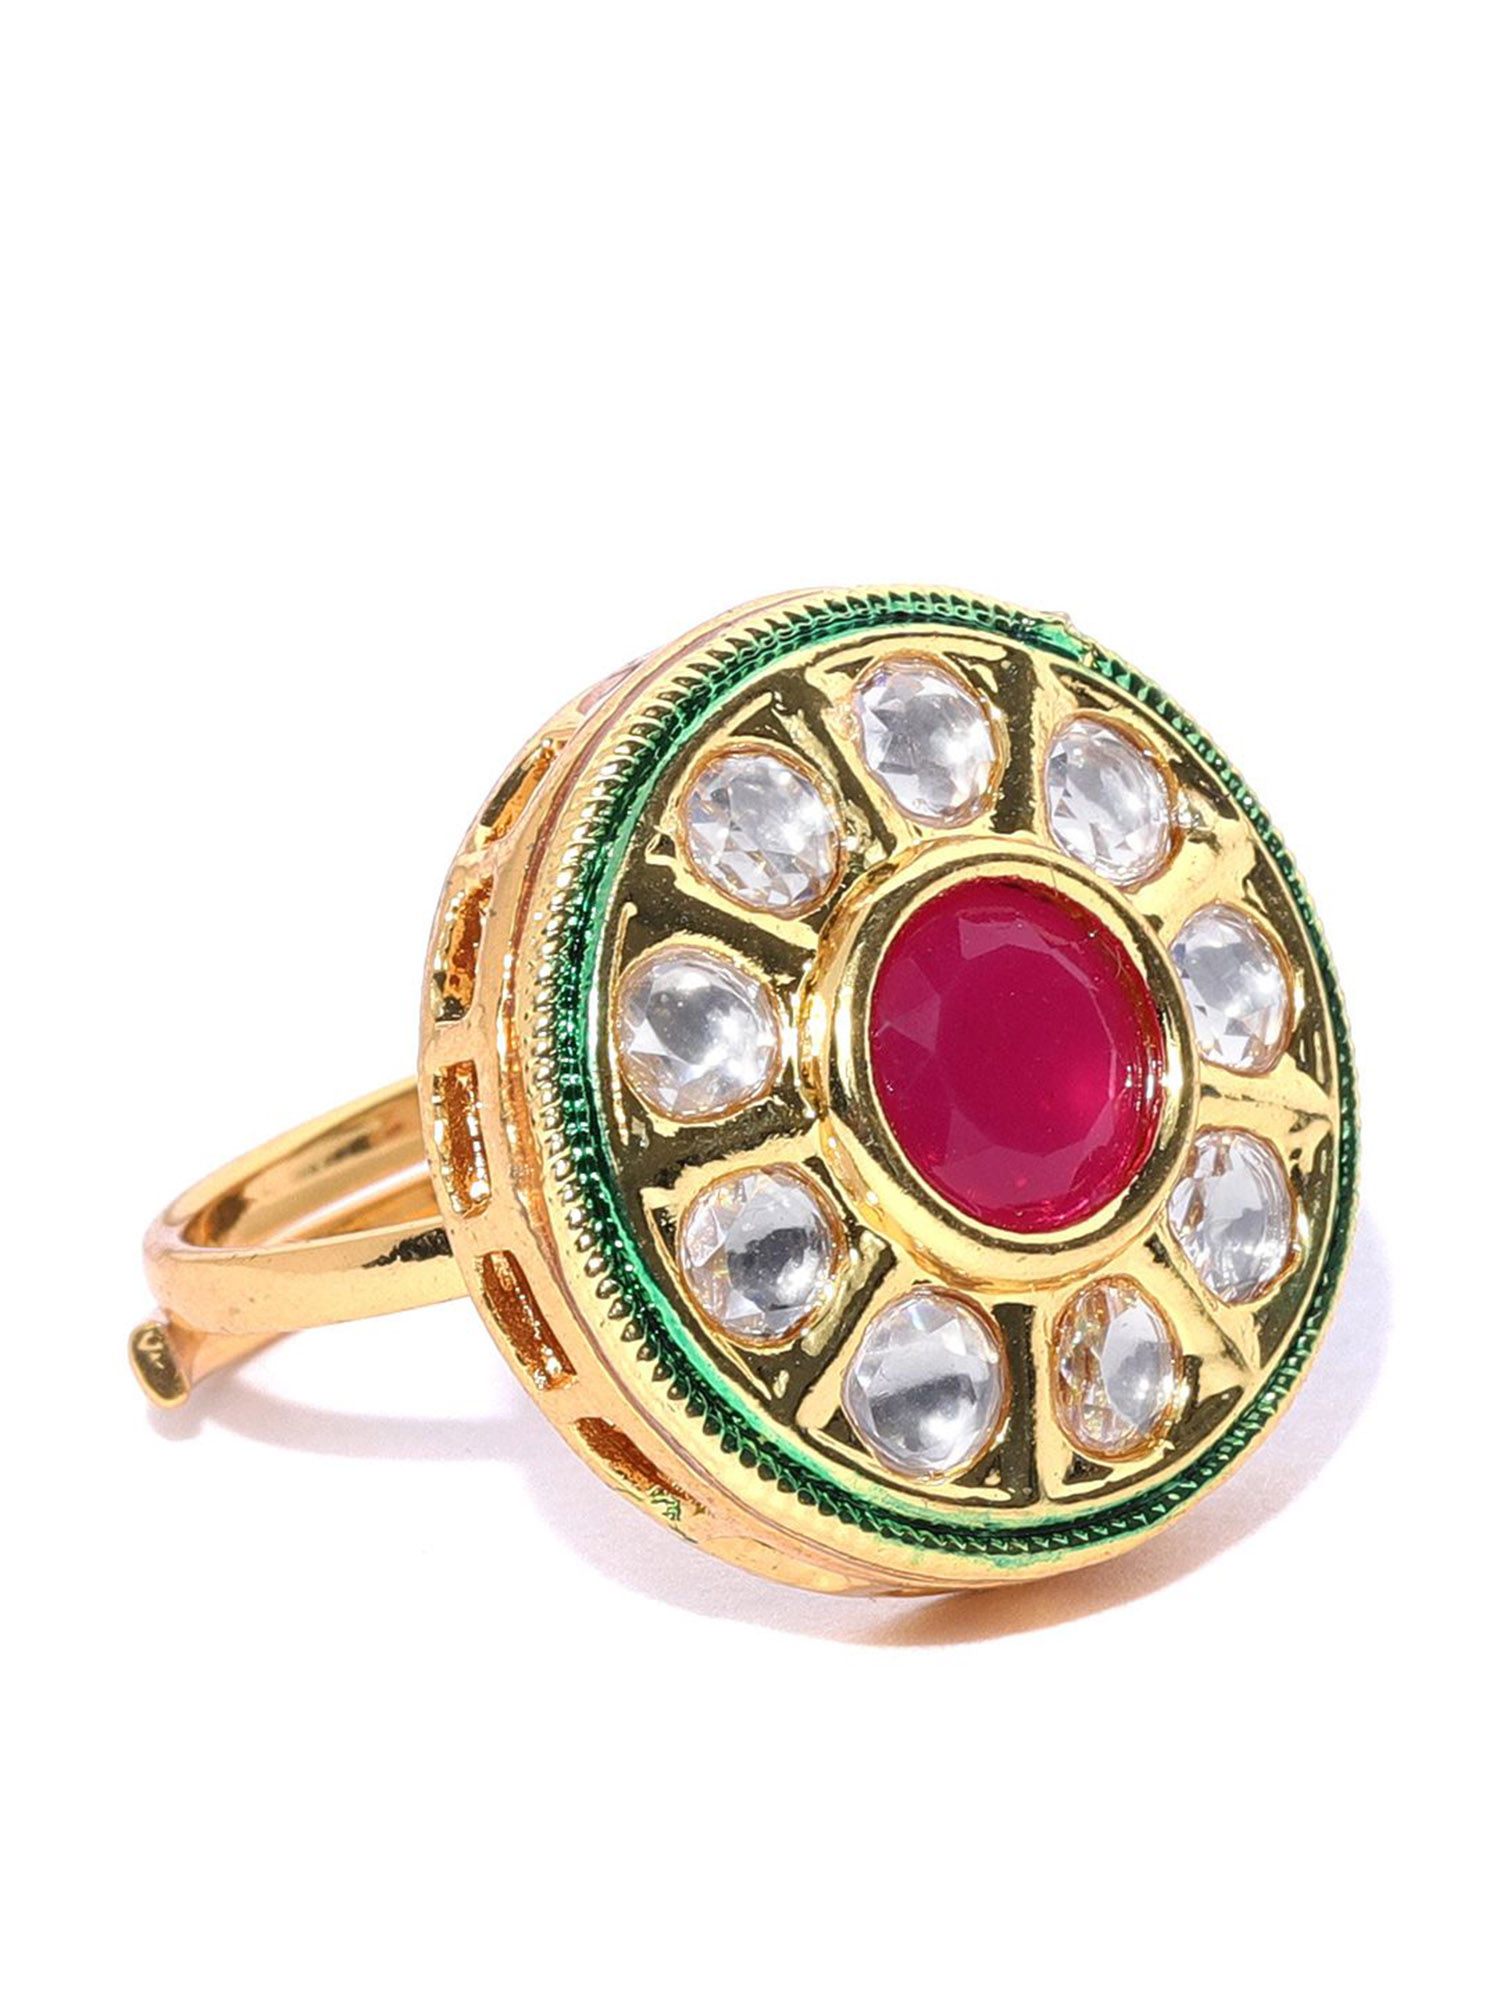 Wedding Rings Kundan Gold Plated Adjustable Size Cocktail Style Fashion Jewelry